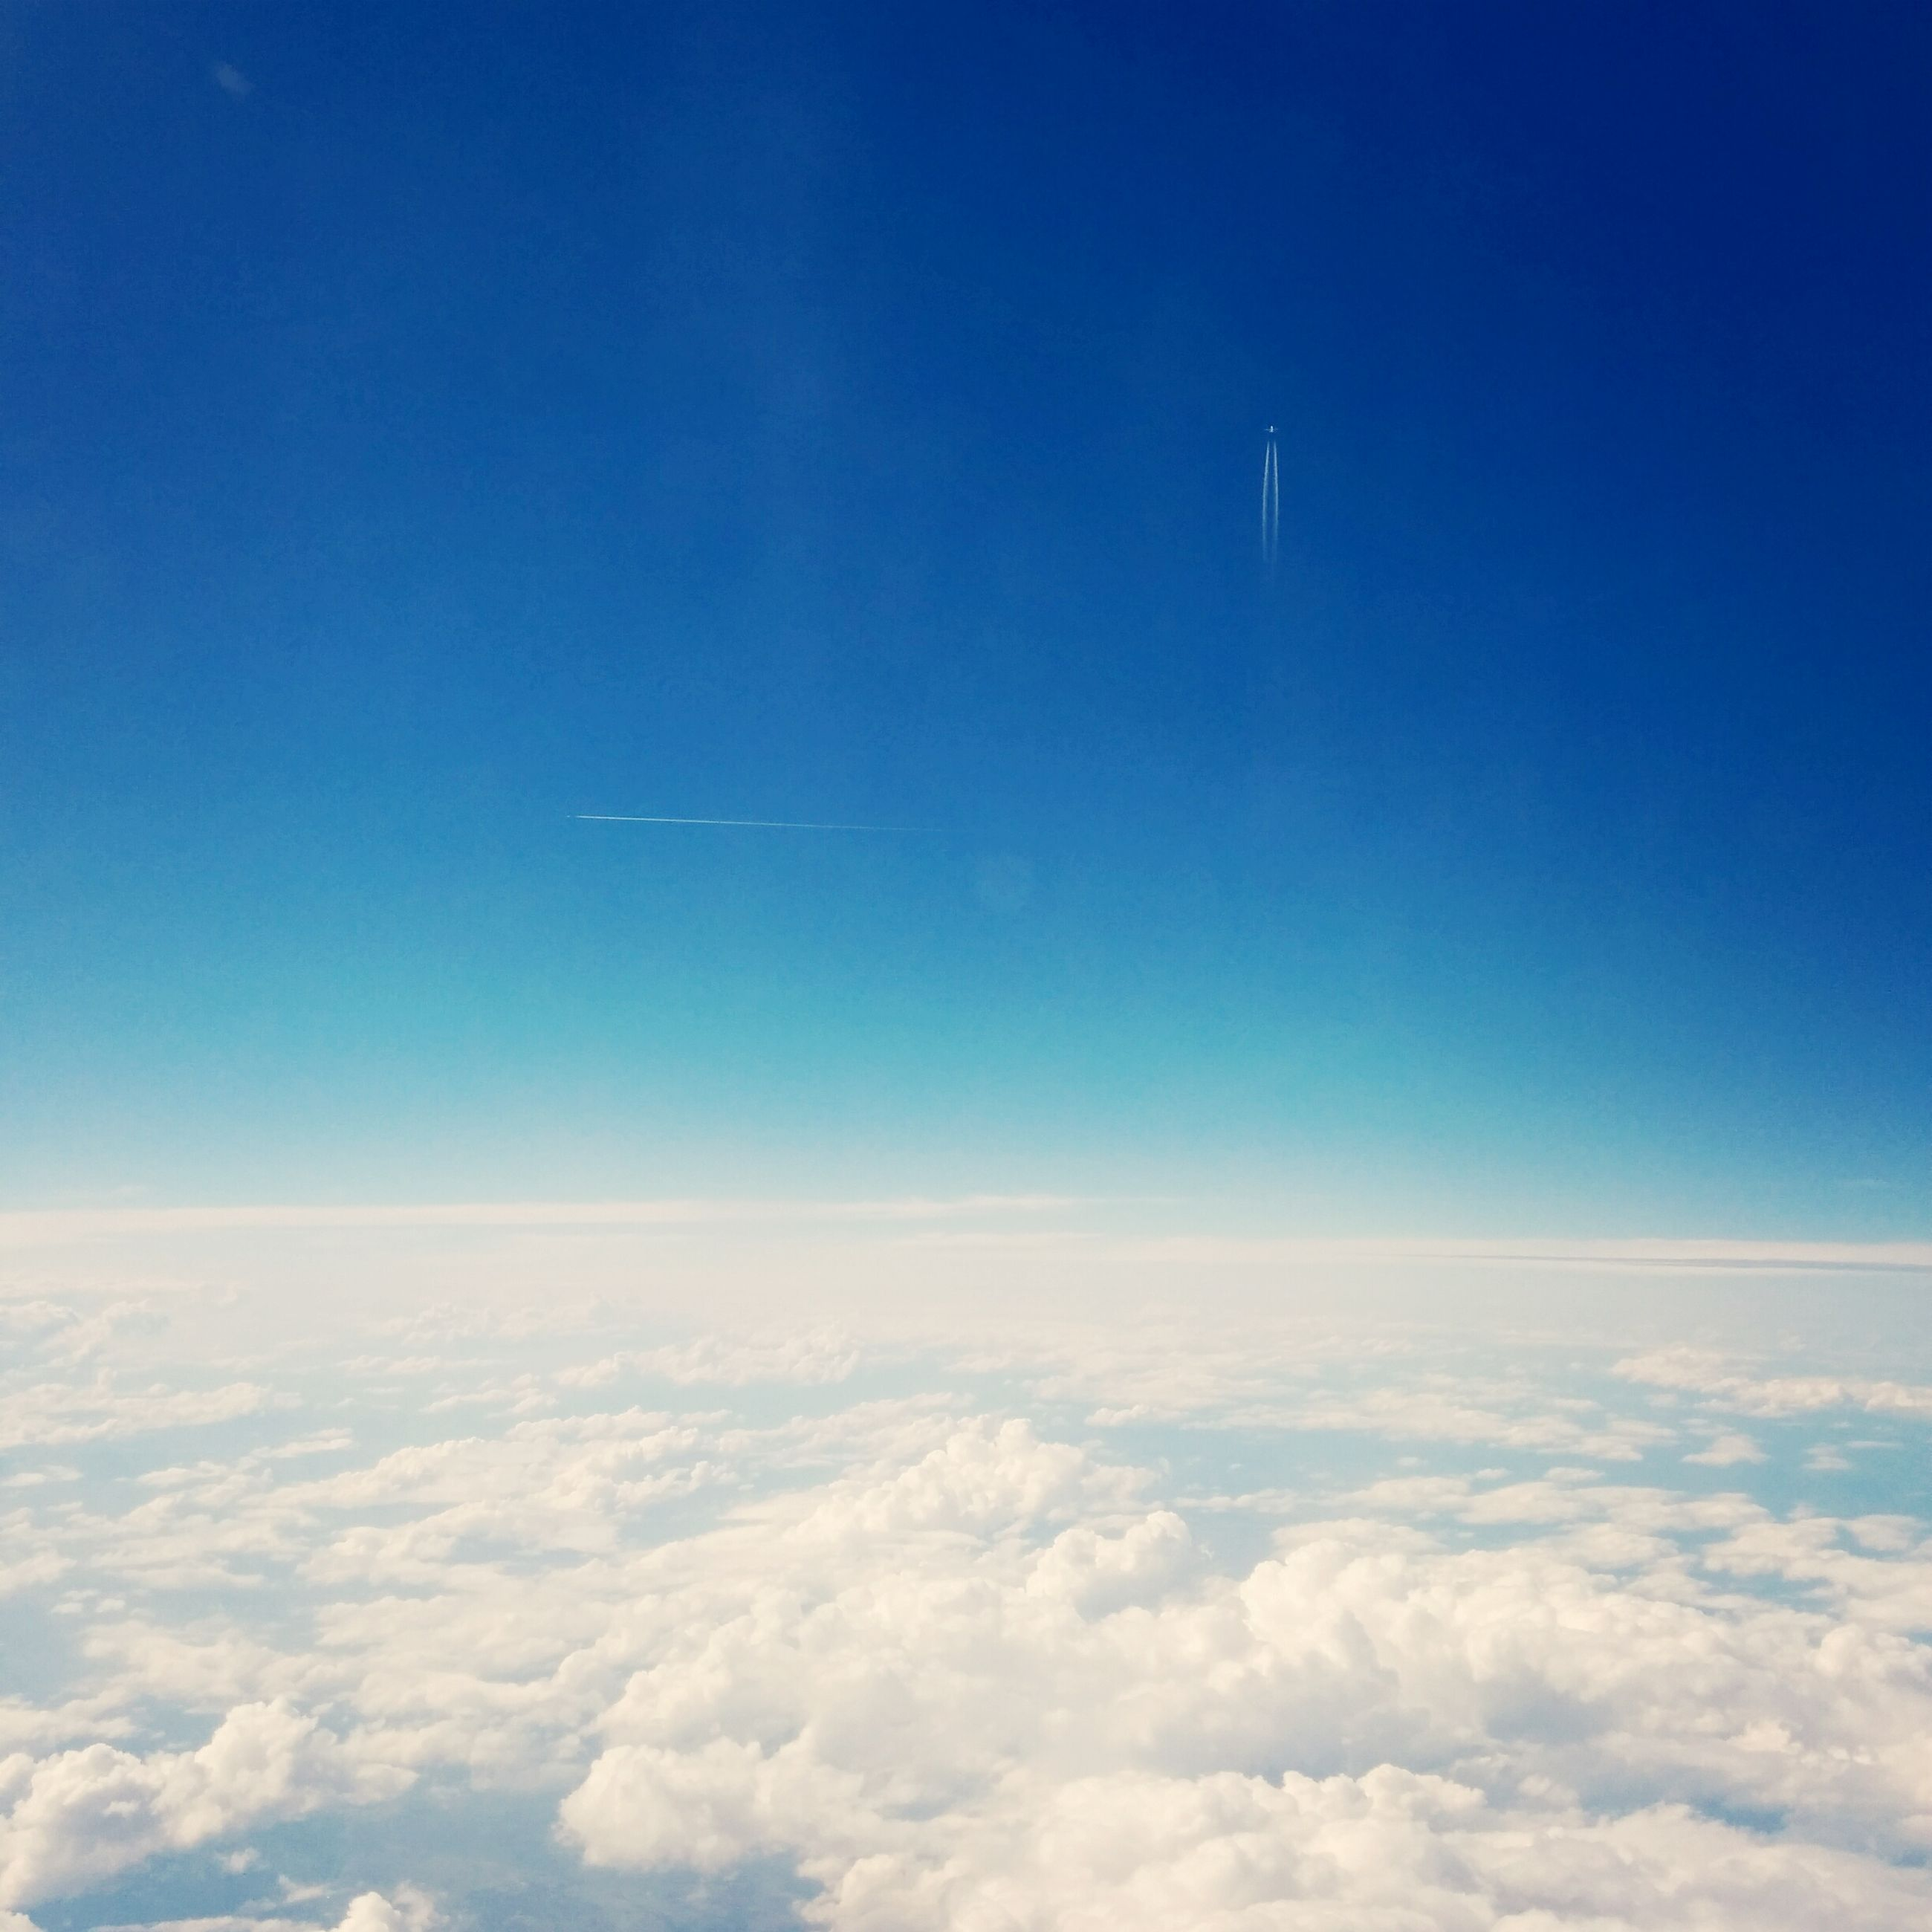 blue, scenics, beauty in nature, tranquil scene, tranquility, aerial view, sky, nature, cloudscape, idyllic, copy space, cloud - sky, sky only, airplane, flying, majestic, landscape, cloud, no people, outdoors